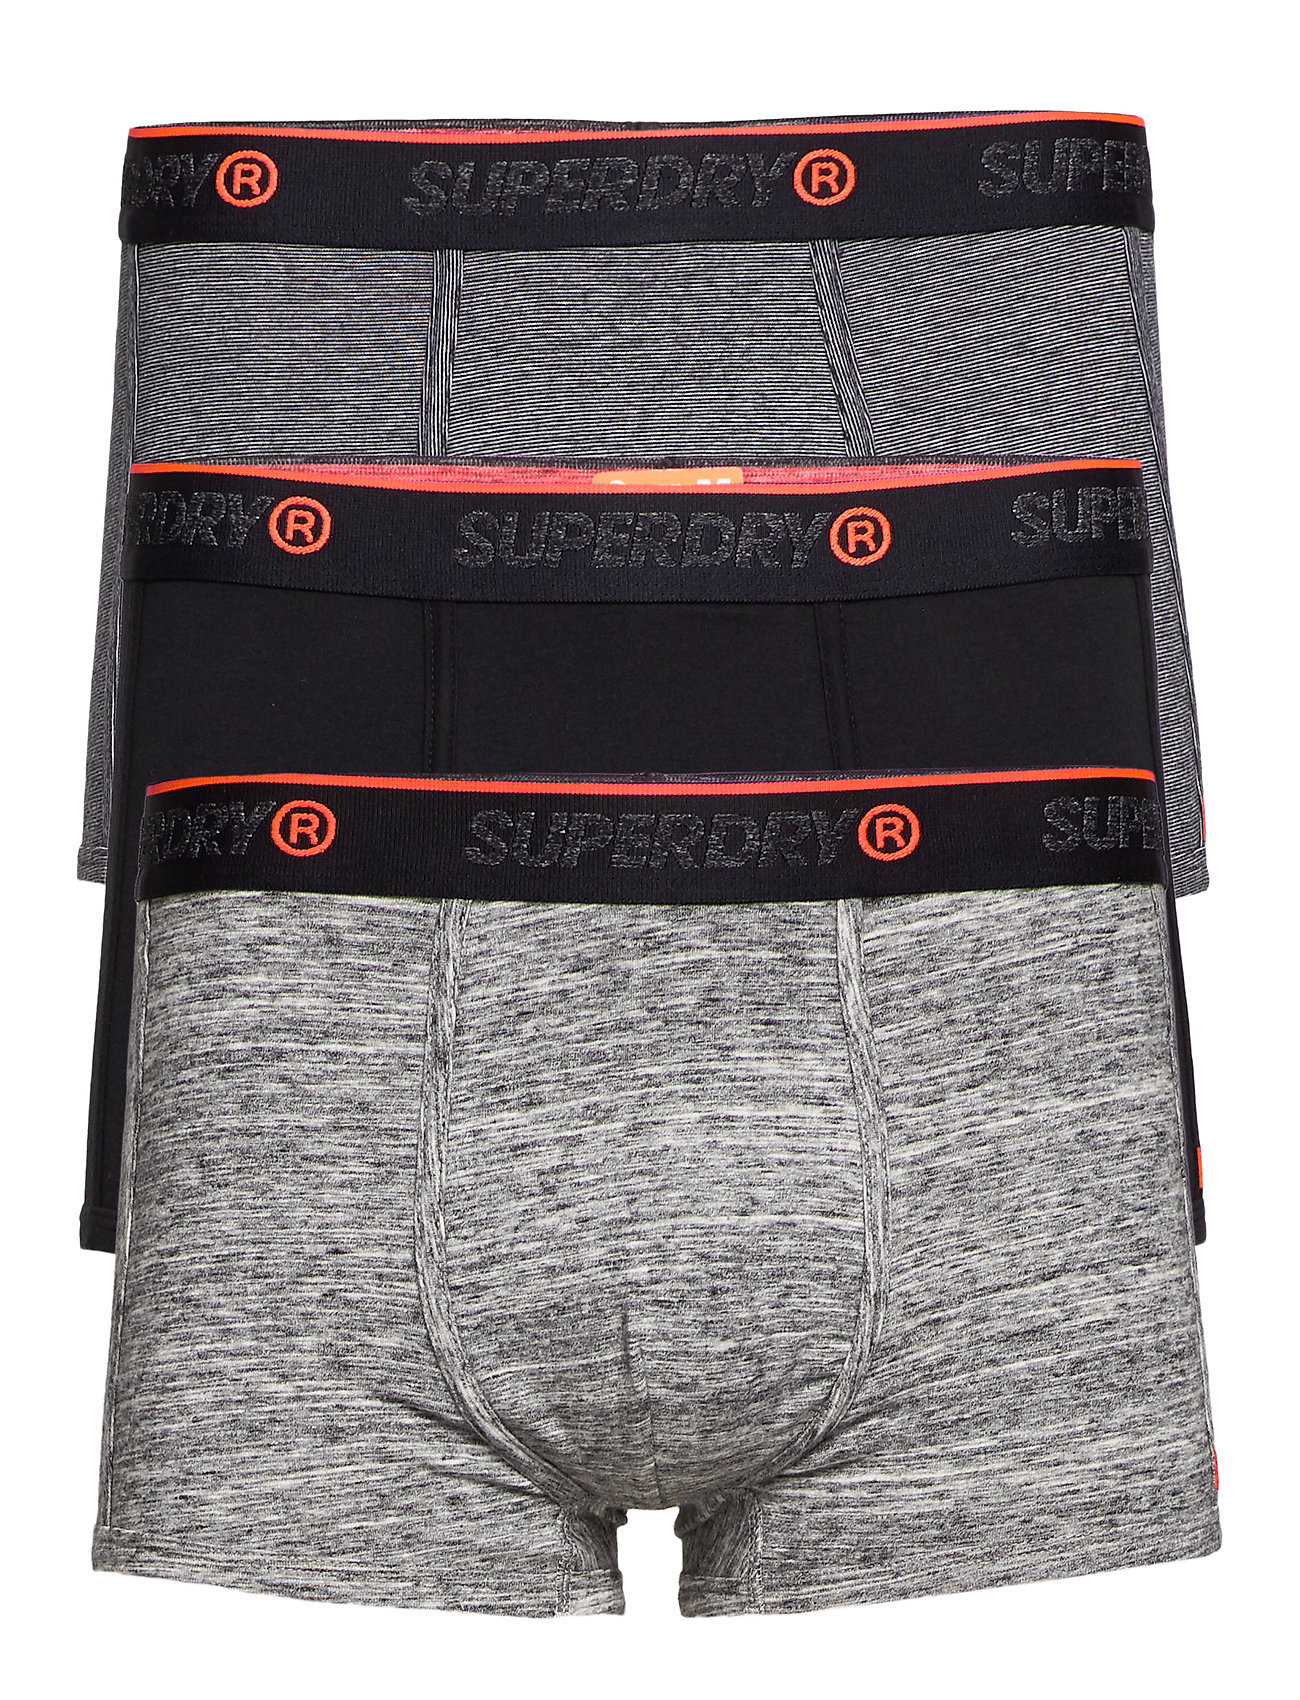 Superdry O.L SPORT TRUNK TRIPLE PACK - BLACK/BLACK FEEDER/FLINT GREY GRIT